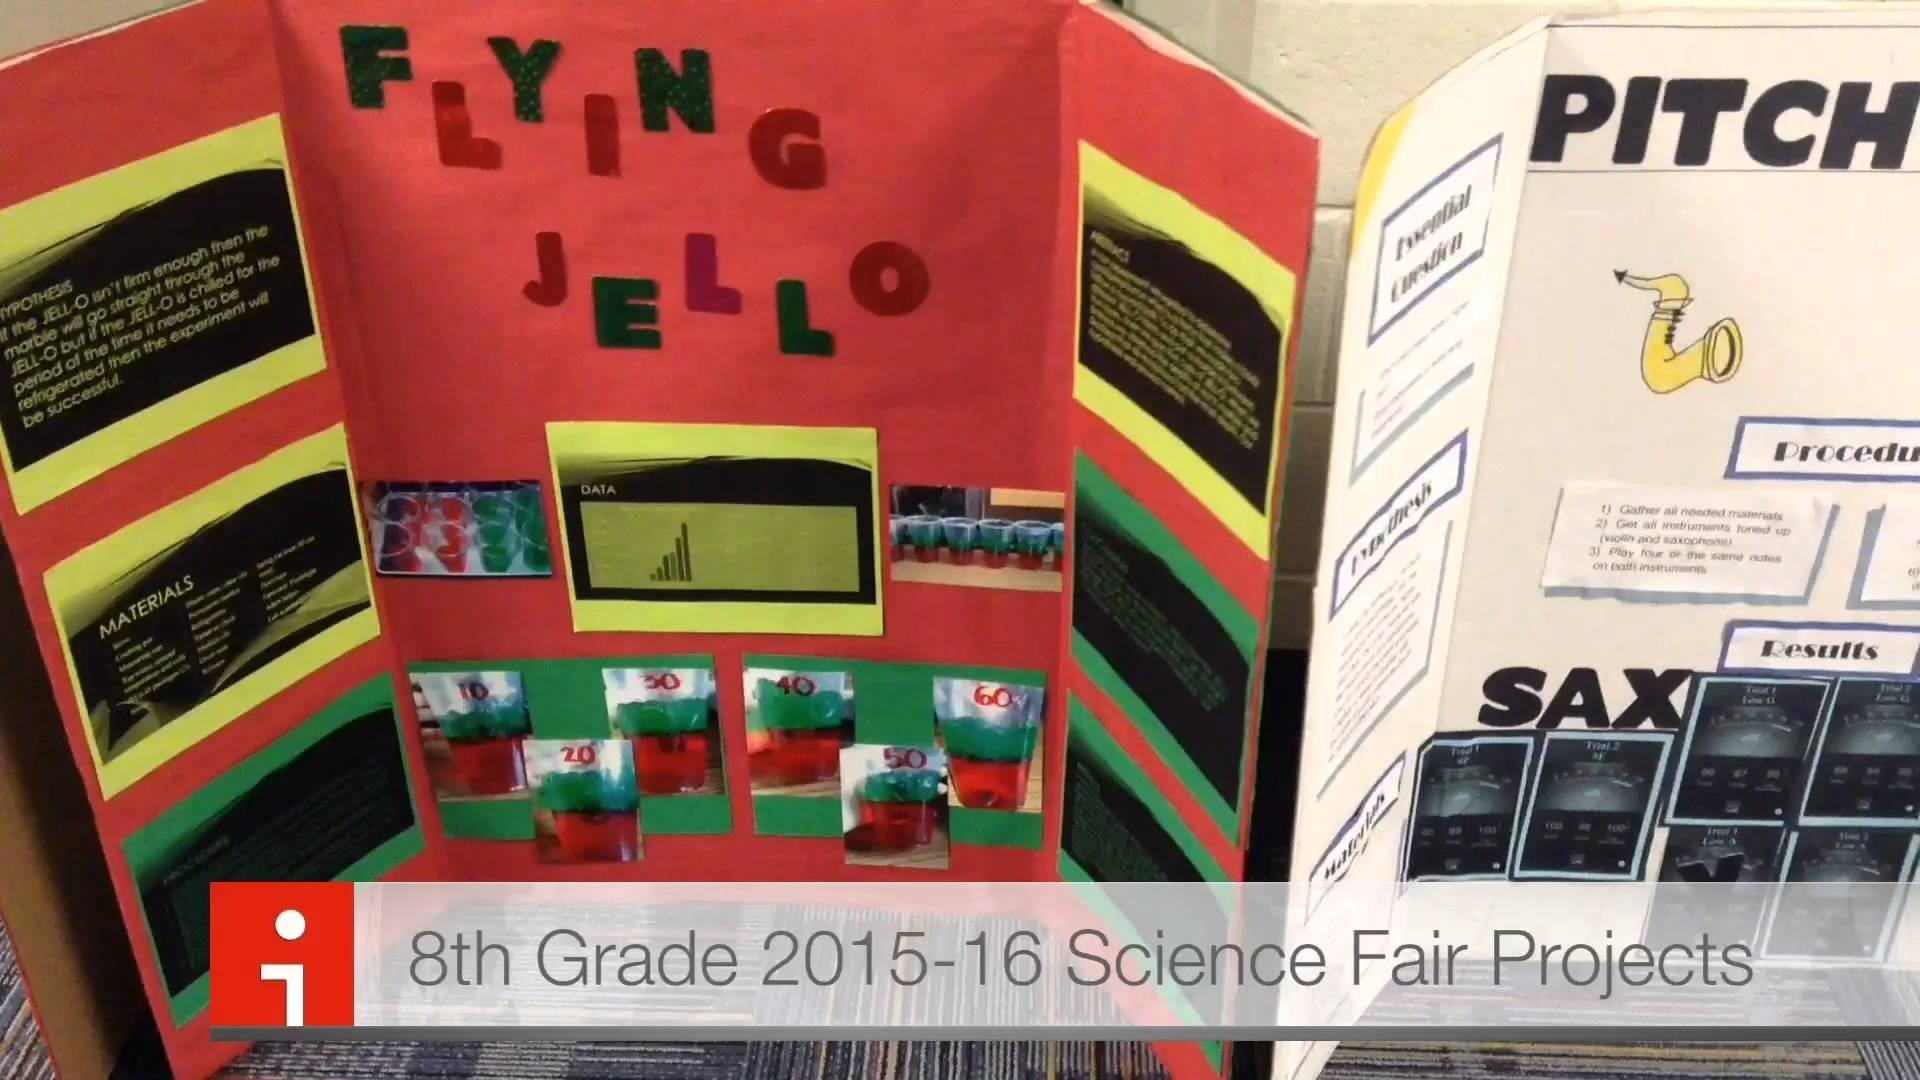 10 Famous Science Fair Project Ideas For 8Th Grade 2015 16 8th grade science fair projects youtube 2 2021